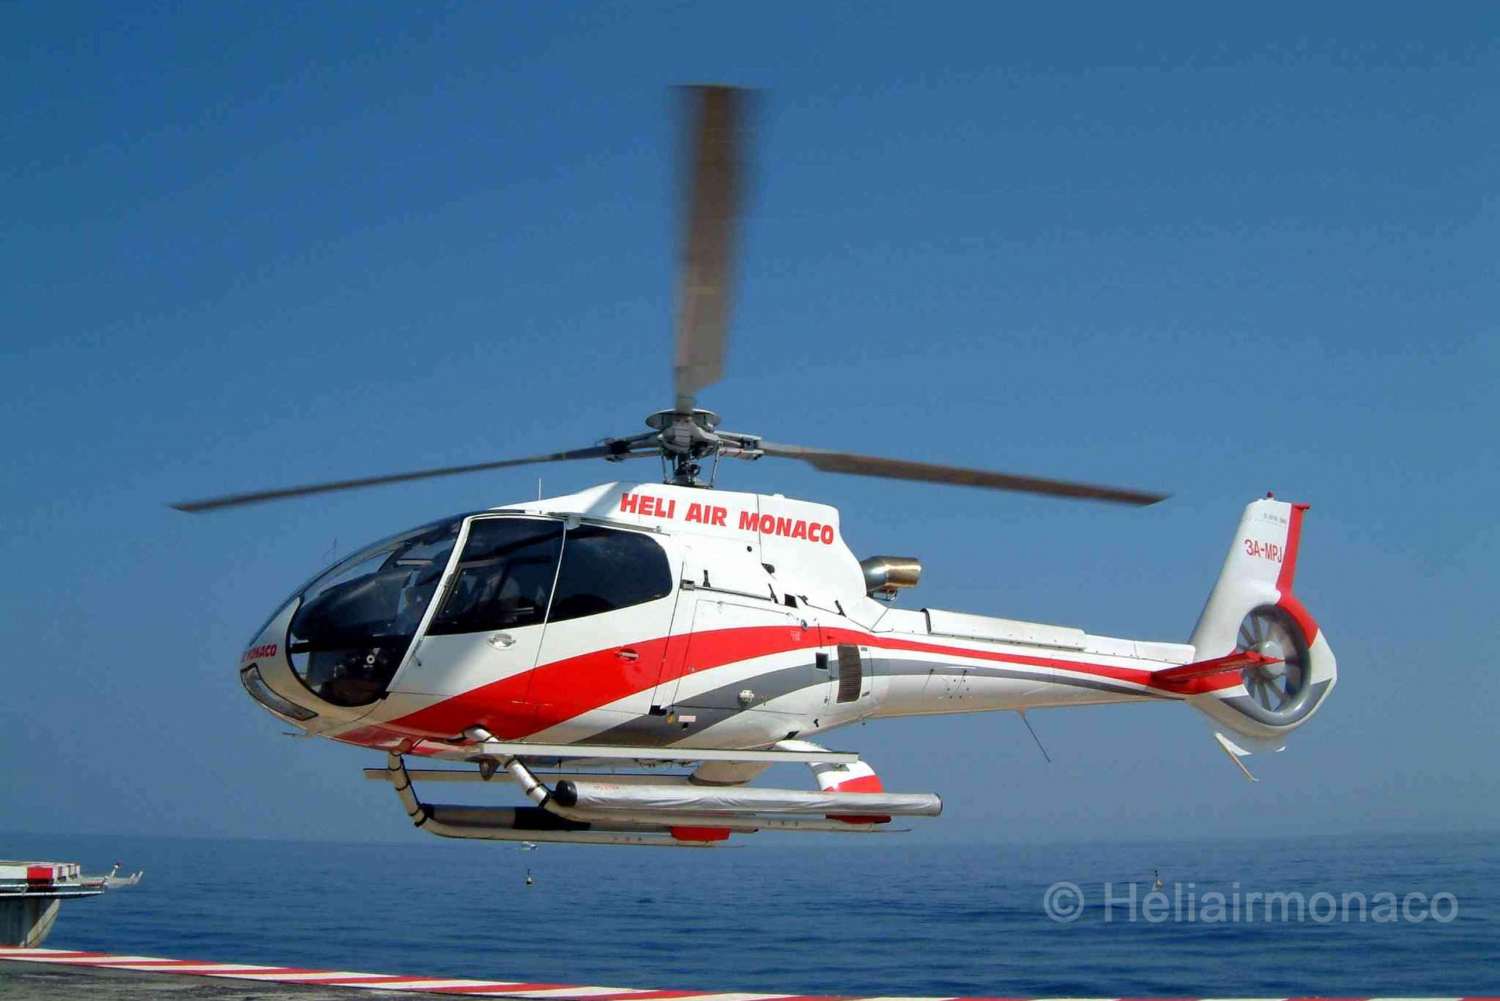 From Nice: Helicopter Transfer & Lunch in Monaco